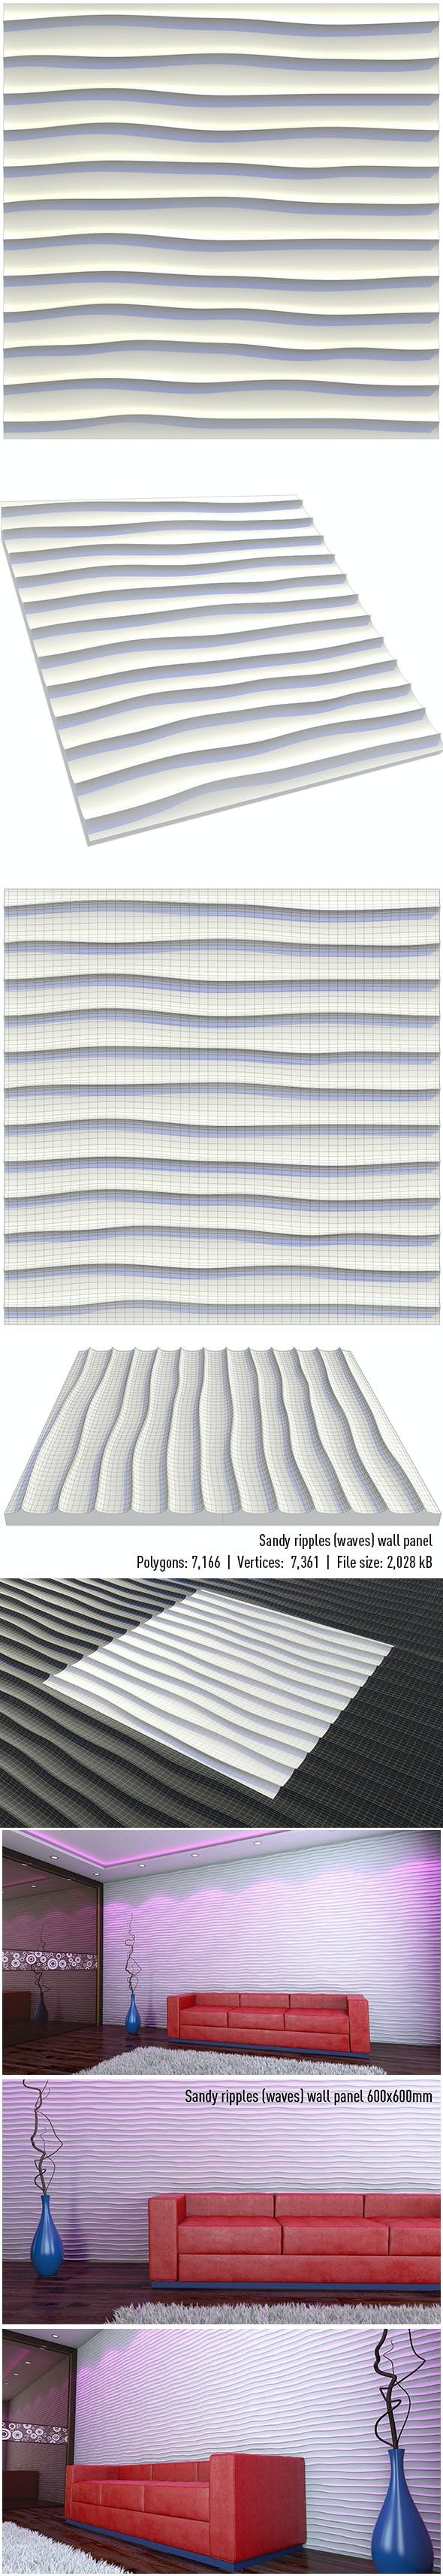 sandy ripples (waves) wall panel - 3DOcean Item for Sale